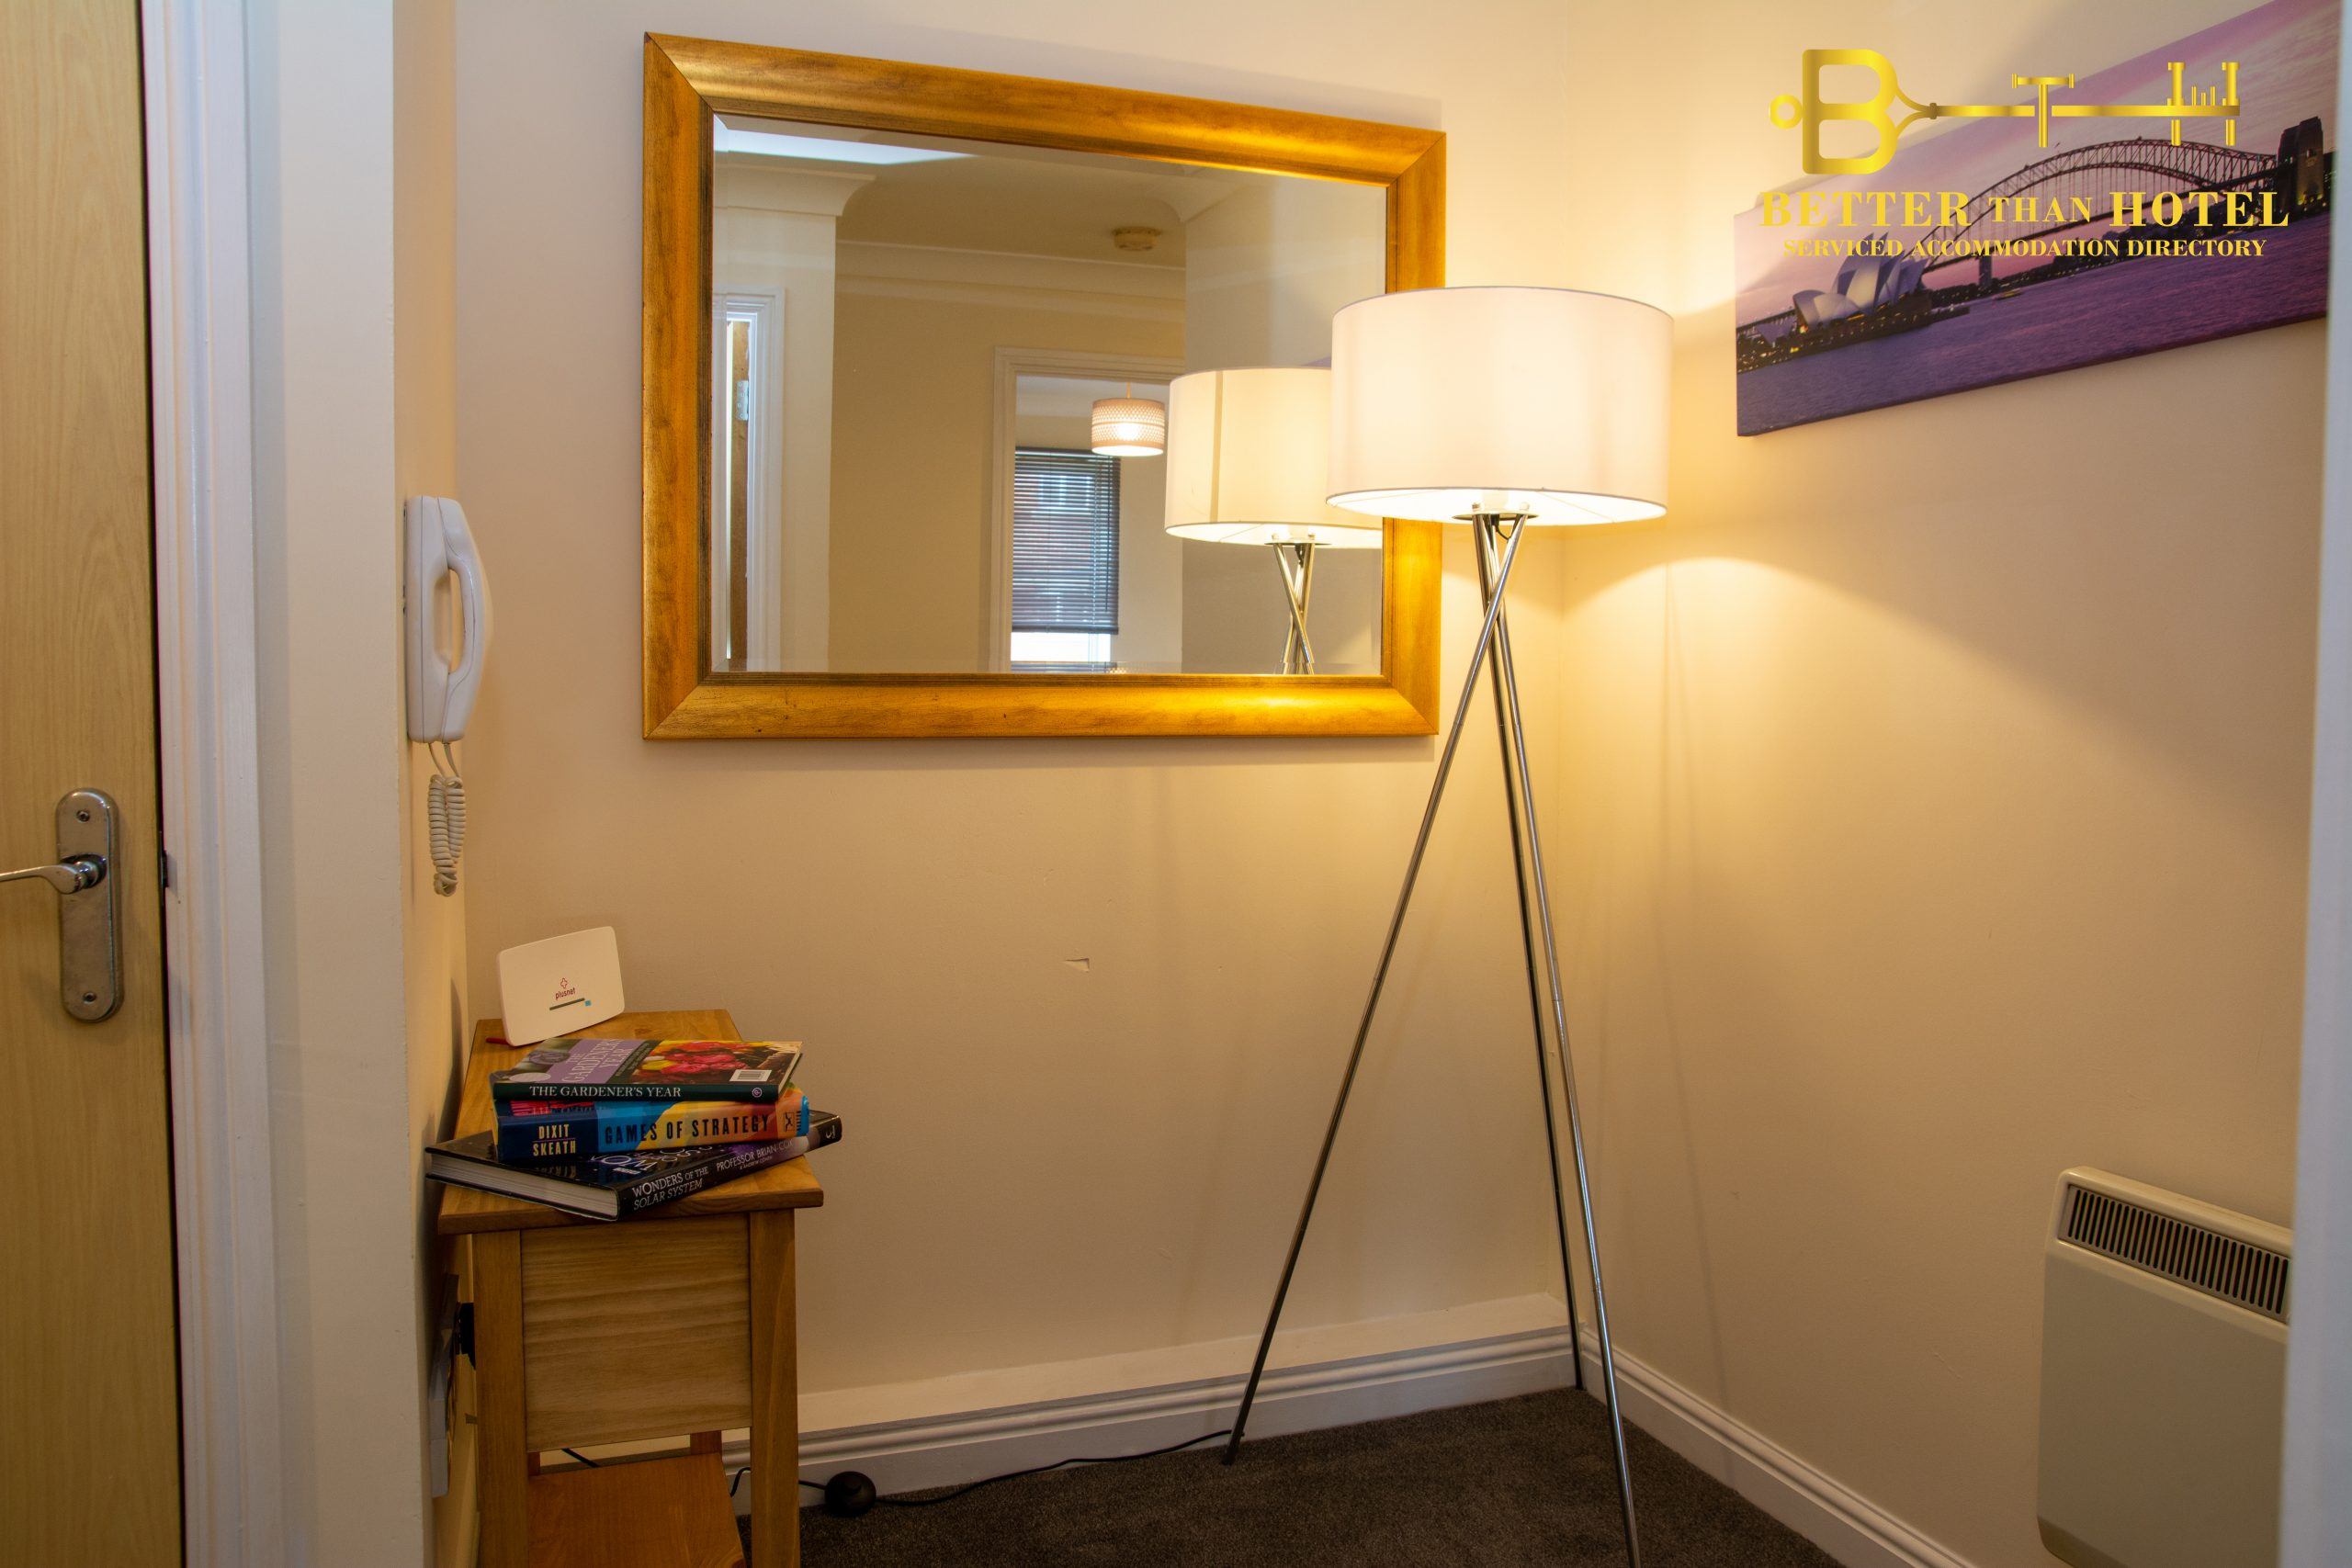 #1 Secret To Motivating Your House Keeping Team in Serviced Accommodation Business